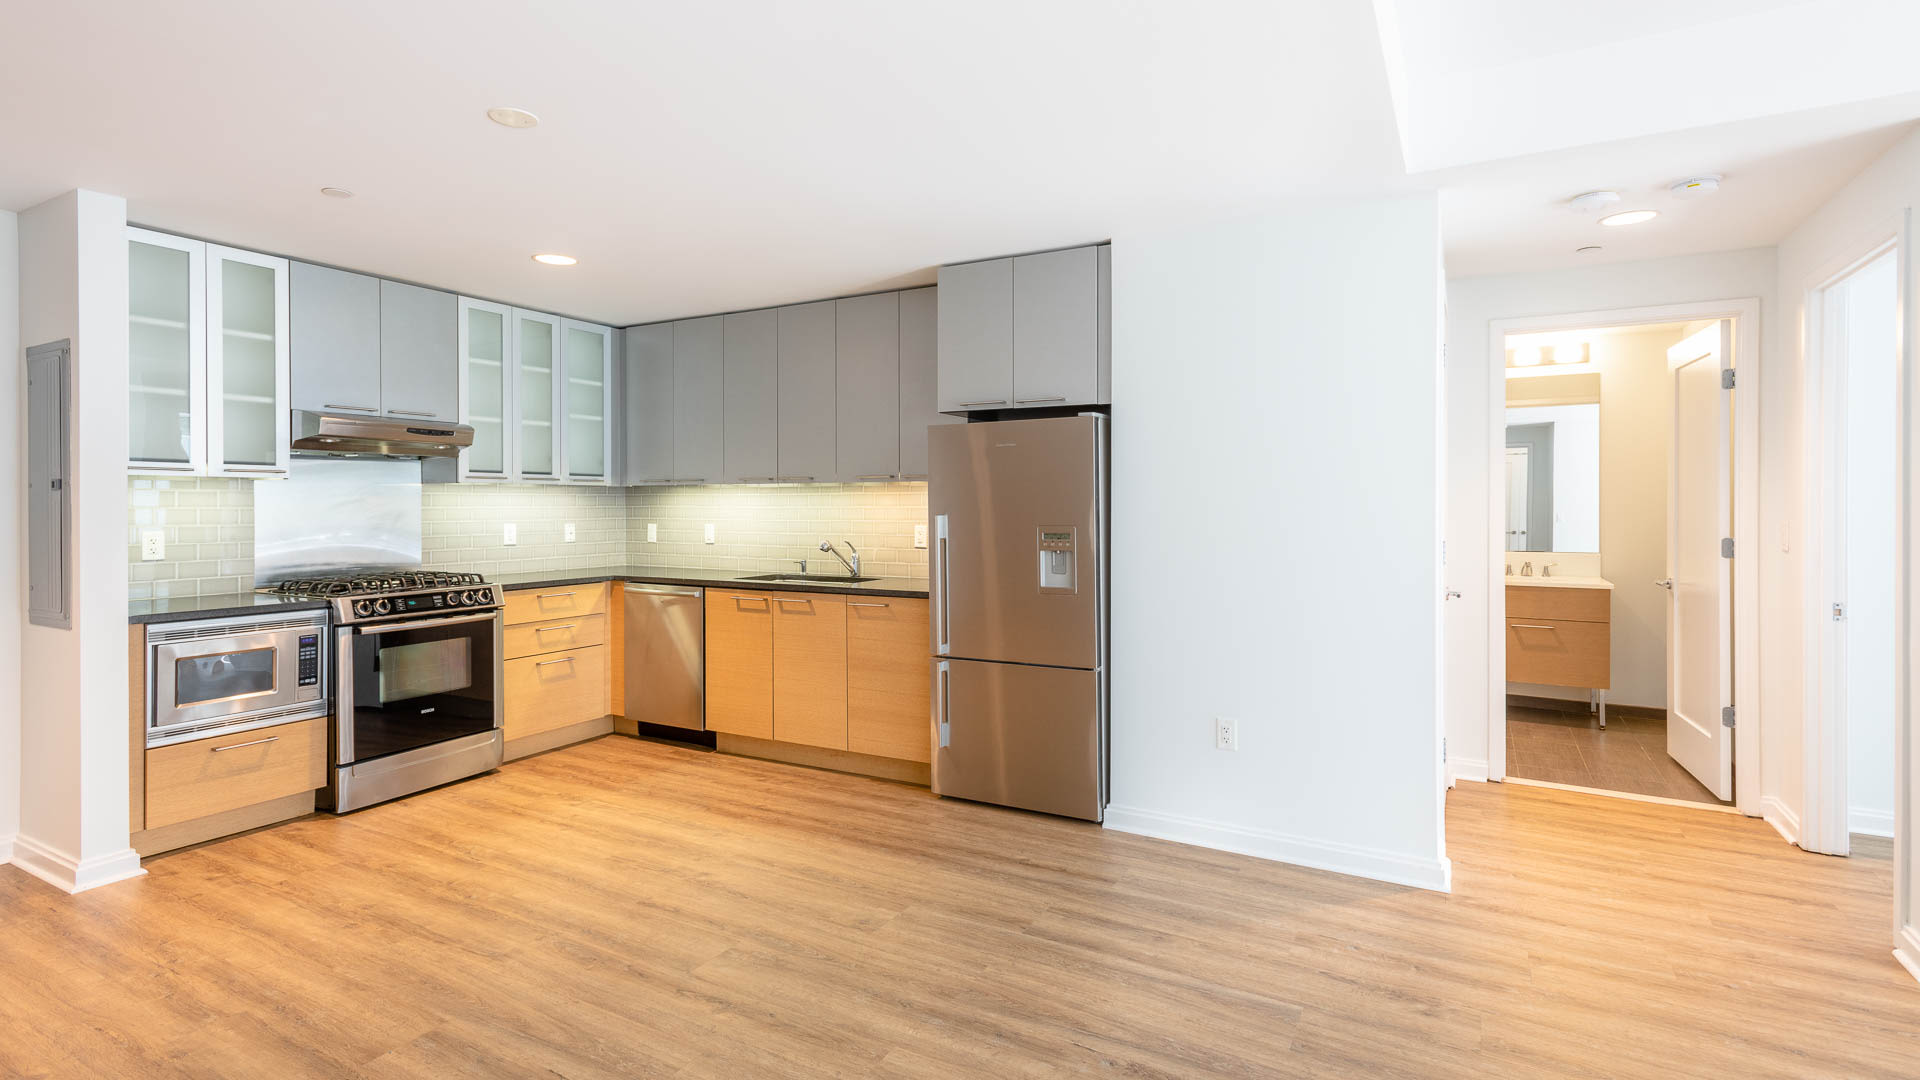 Third Square Apartments - Kitchen and Dining Area